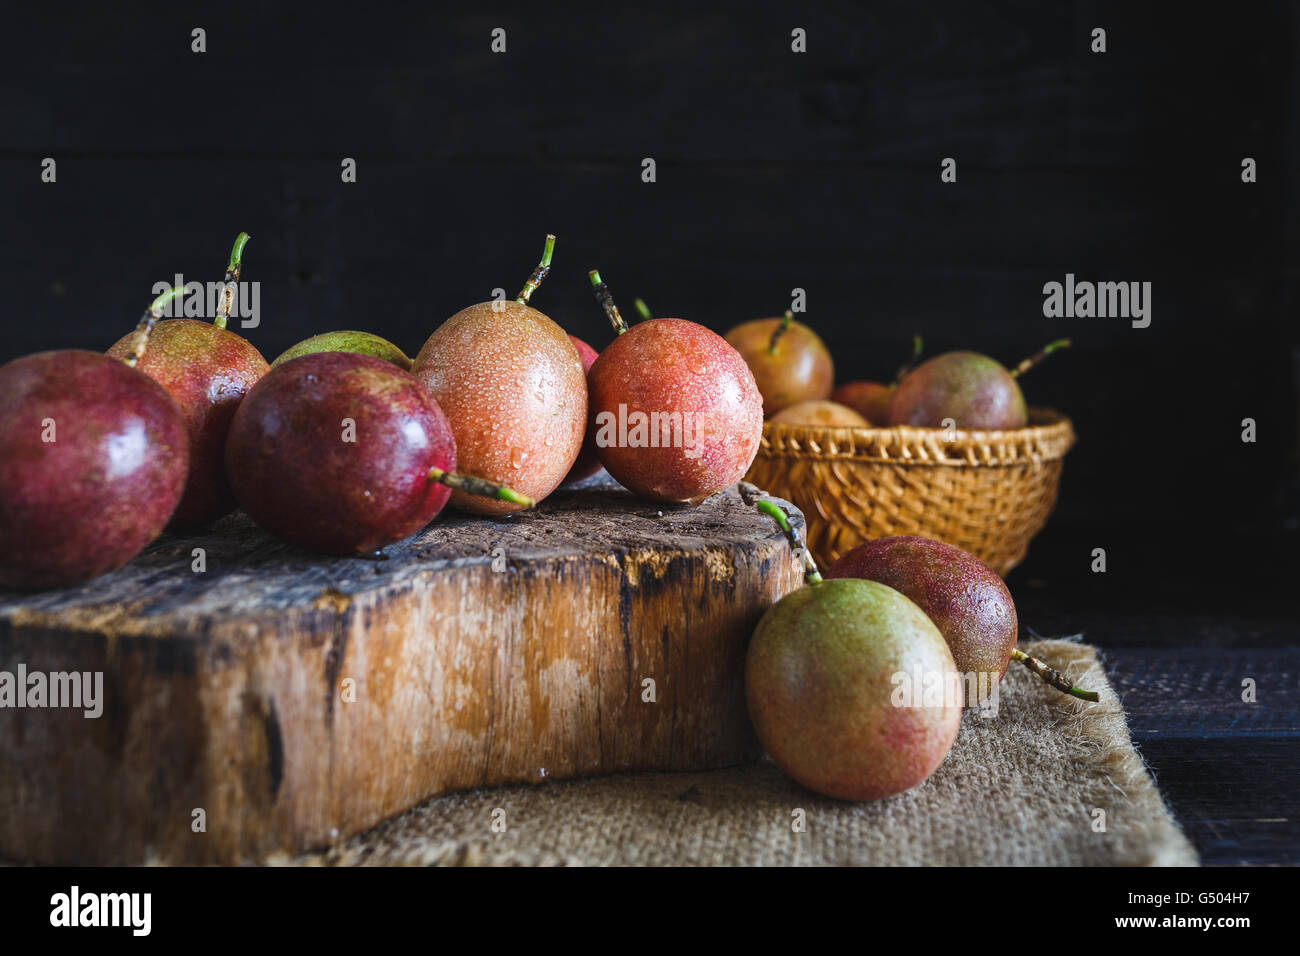 Passion Fruits - Stock Image